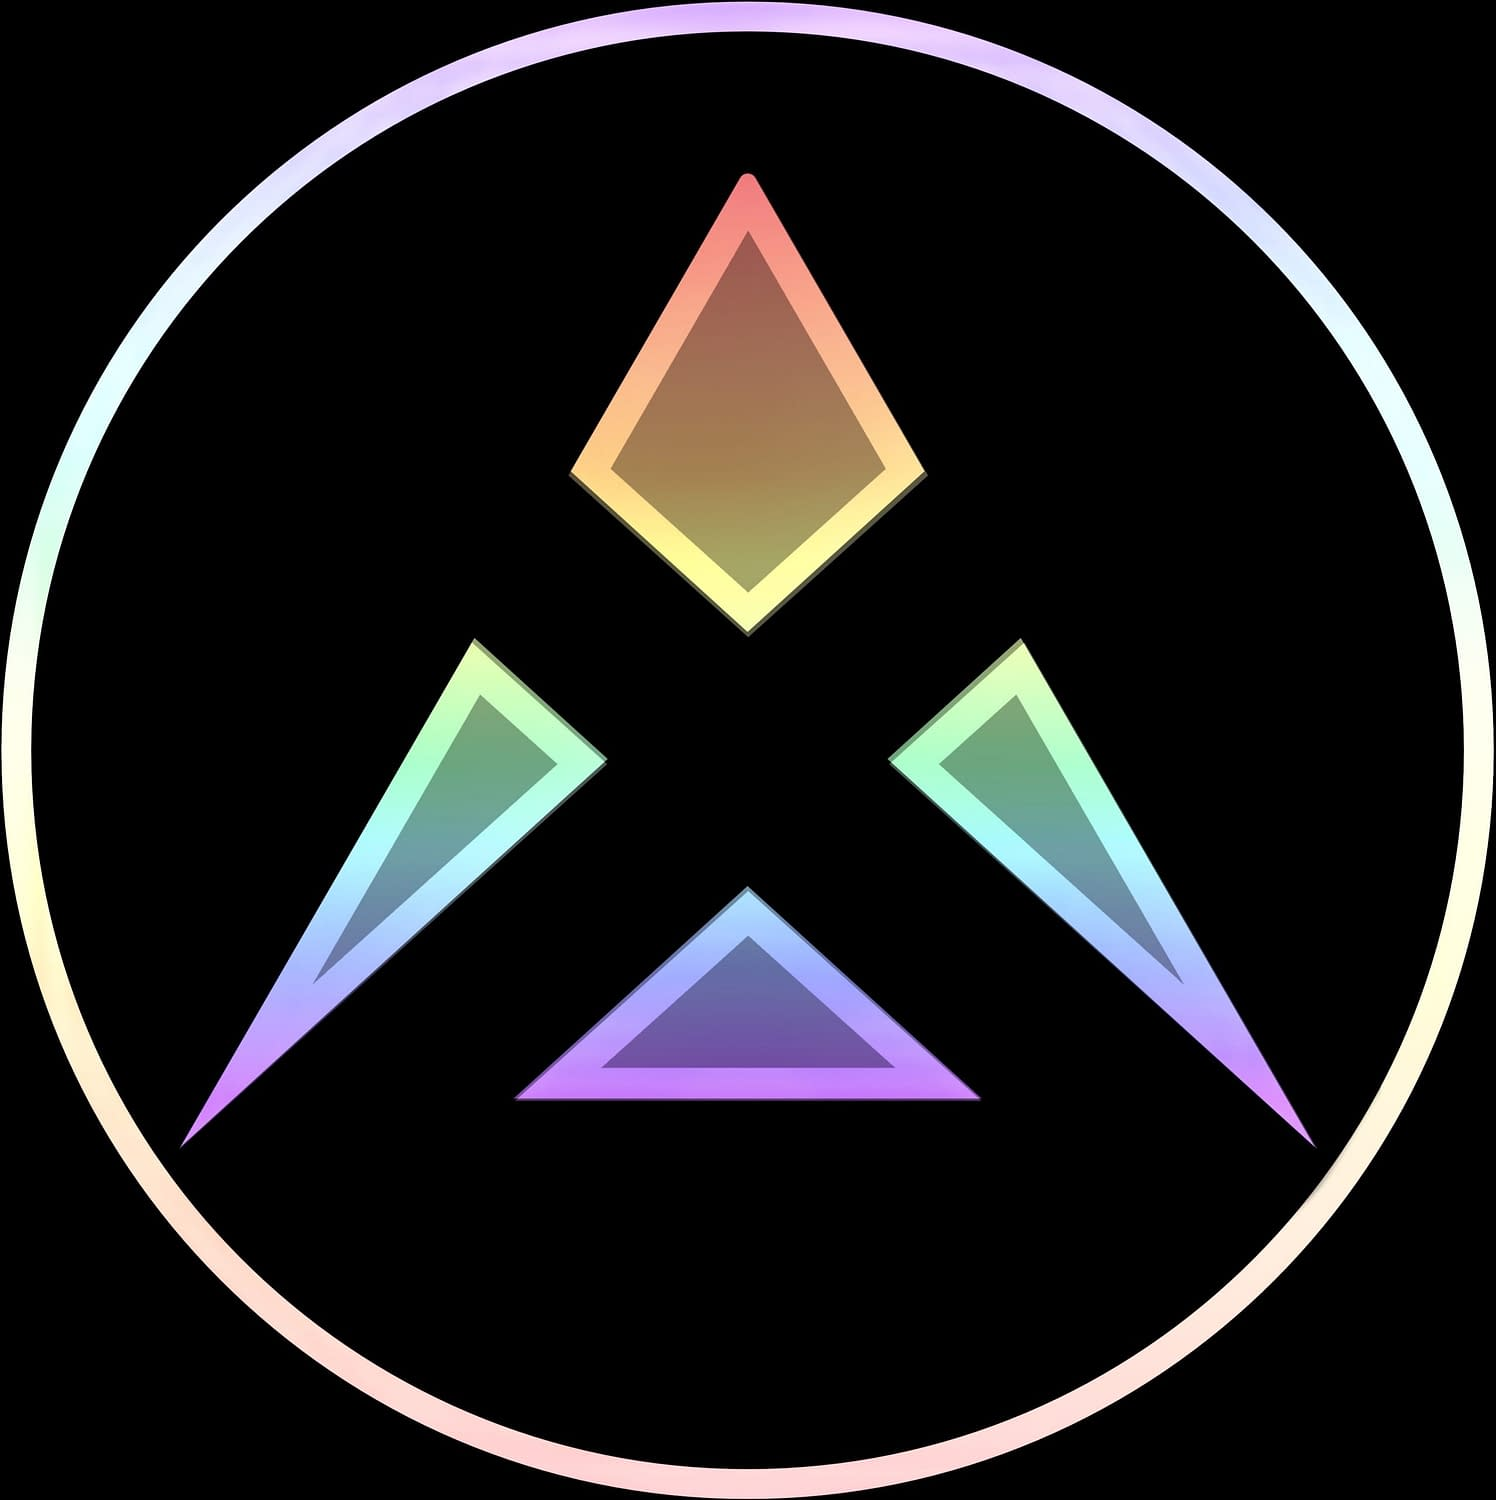 Vallax logo in badge style - Graphics - Alternate rendition of my logo as a metallic angular badge with a bright outer bezel.